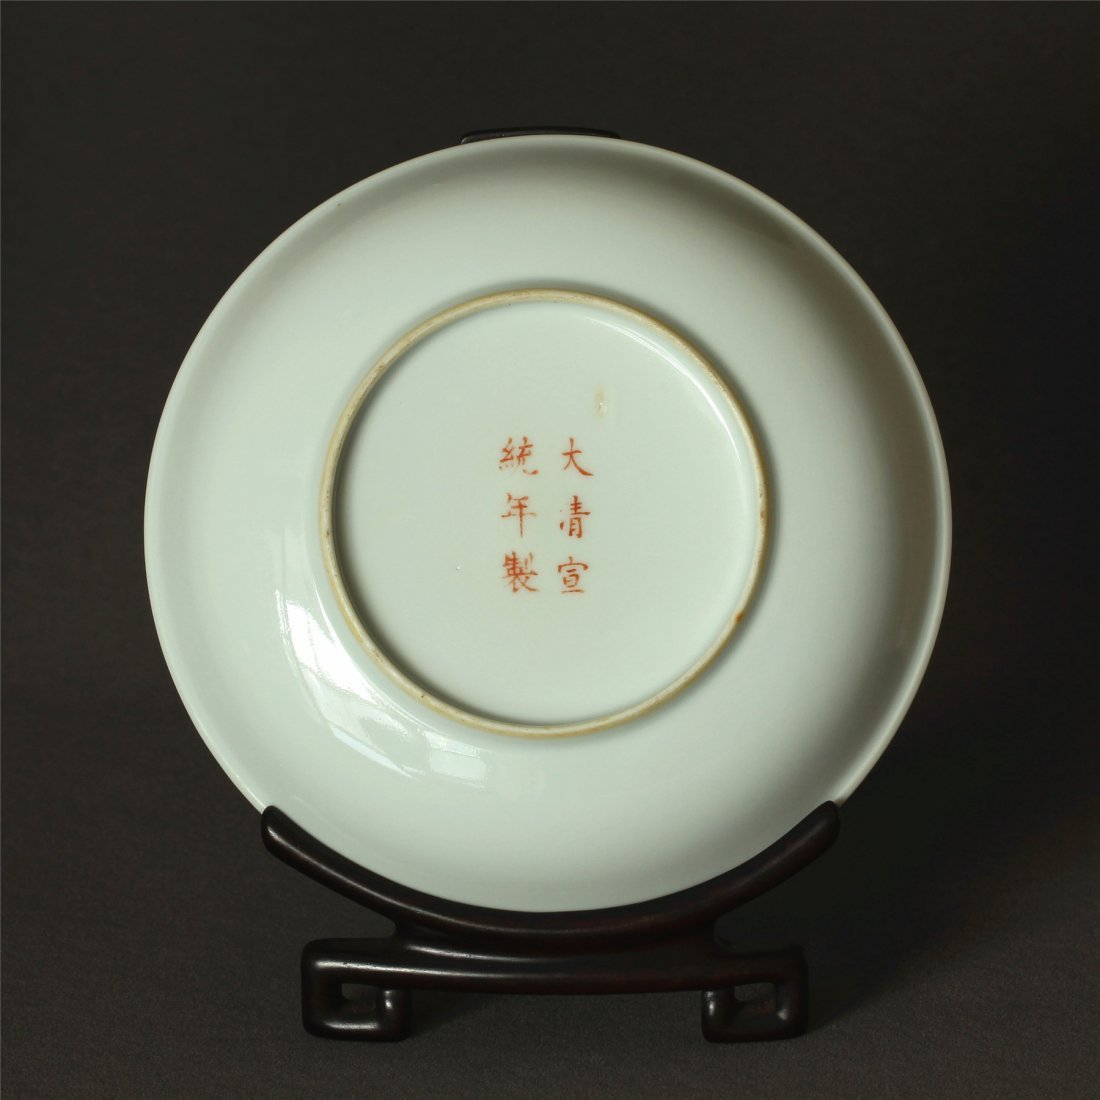 Famille rose porcelain plate of Qing Dynasty XuanTong - 4